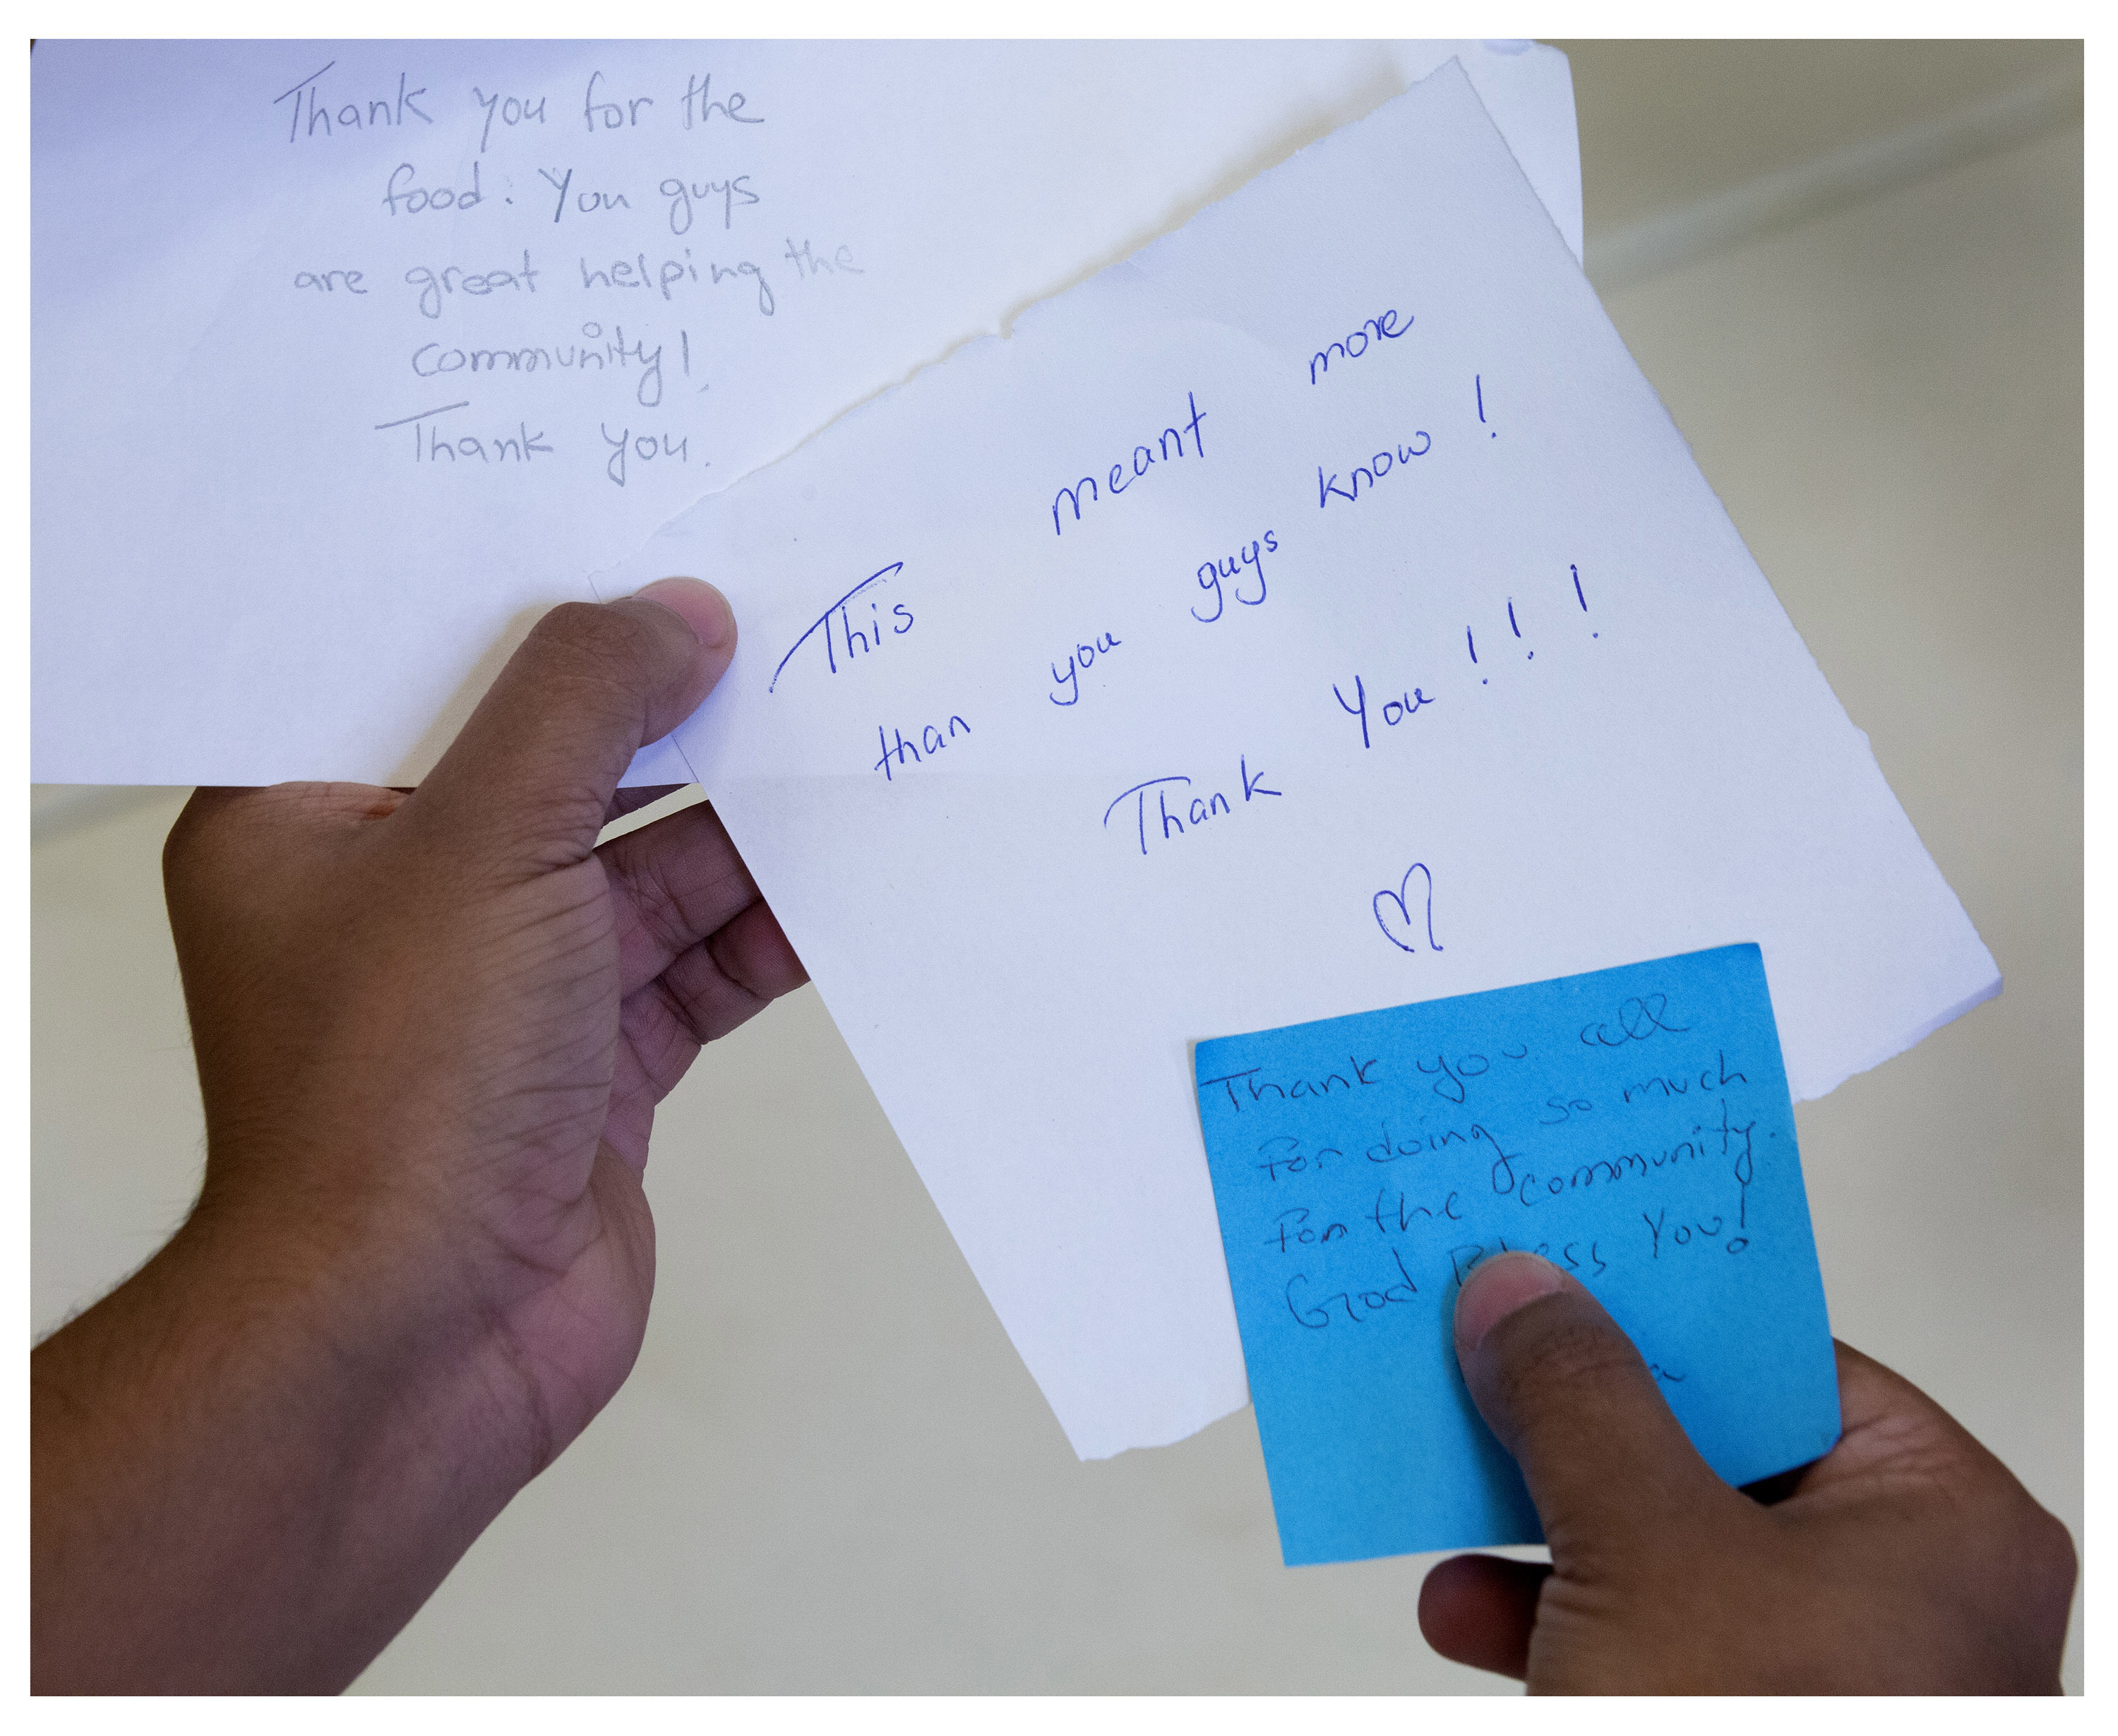 Adid Rahman, a business student at Memorial University, shows some of the notes that have been left for NL Eats volunteers when they deliver  food hampers in St. John's. The group has been using space at St. David's Presbyterian Church in St. John's.  (Photo by Paul Daly)